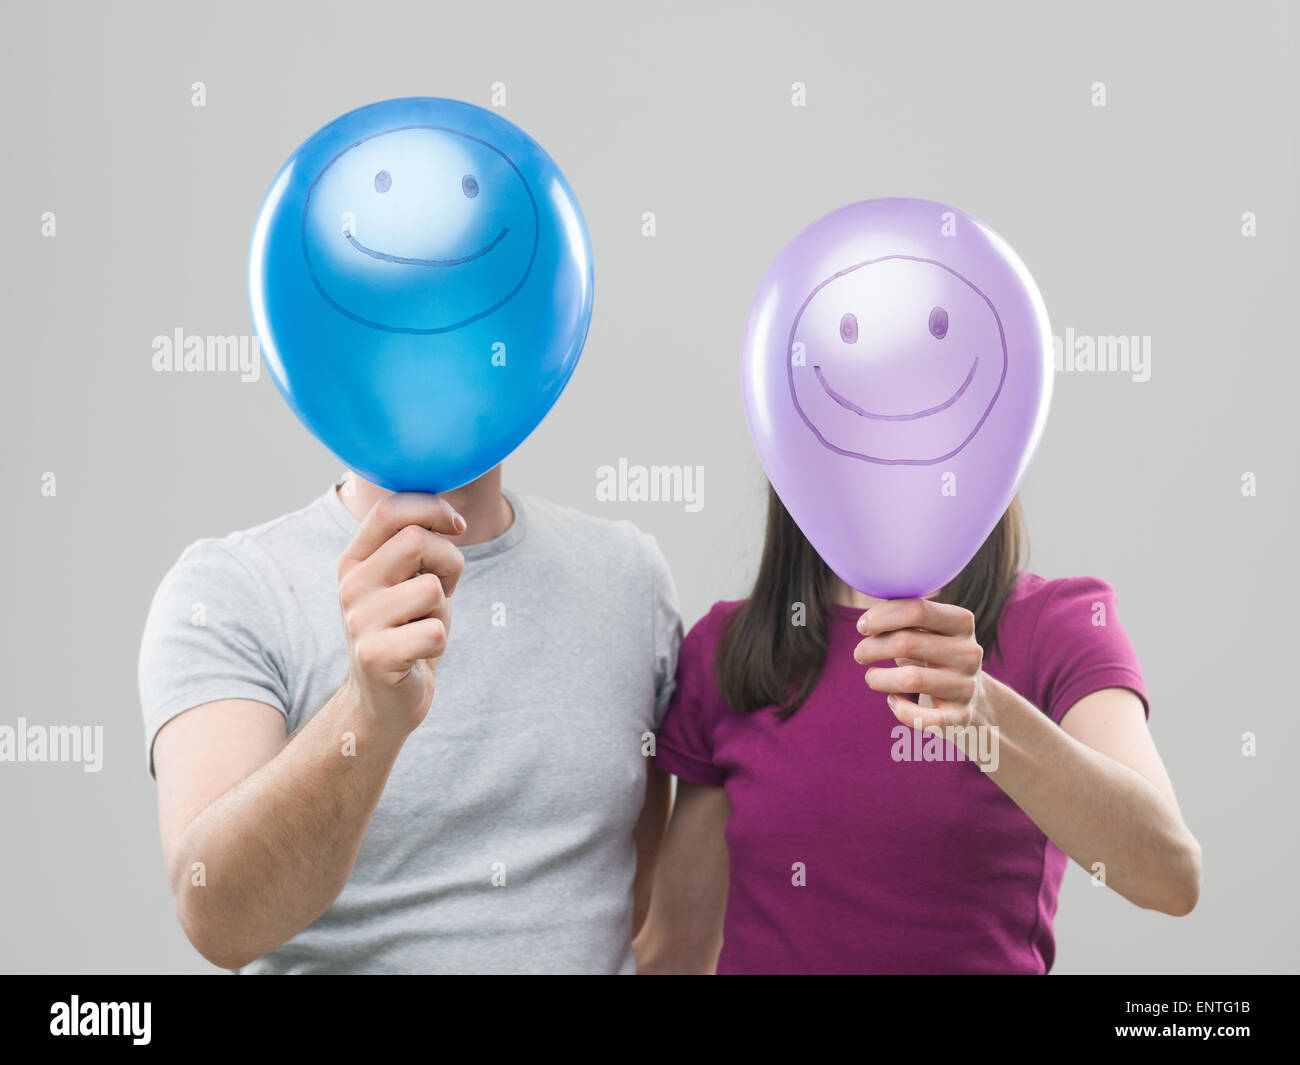 couple hiding their heads behind colorful balloons with smiley faces, against grey background Stock Photo